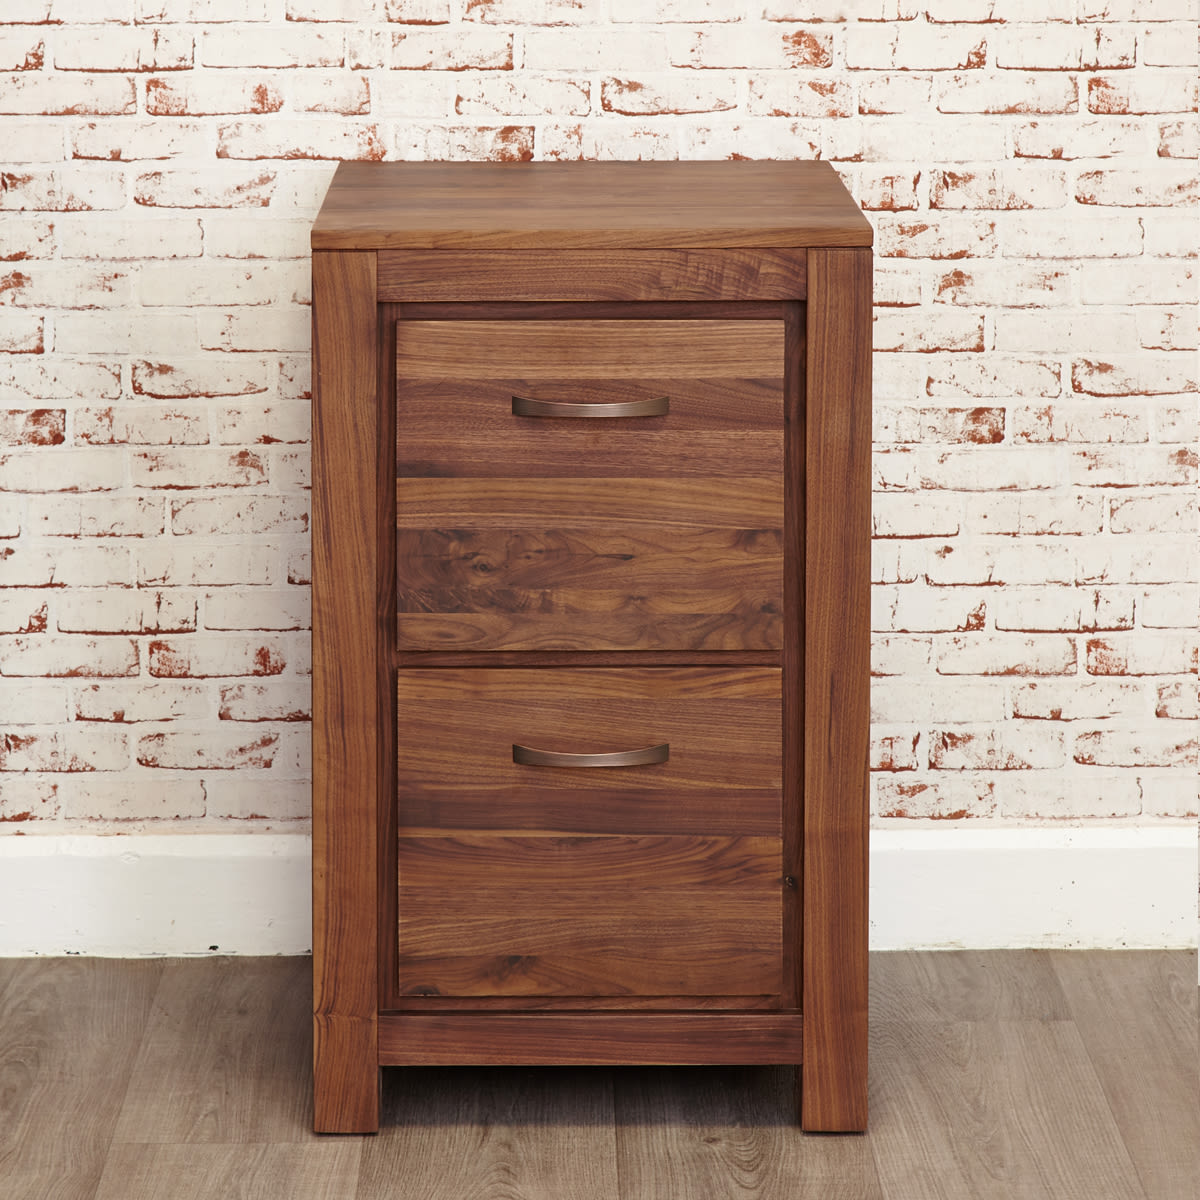 Mayan Walnut Two Drawer Filing Cabinet Was 163 480 00 Now 163